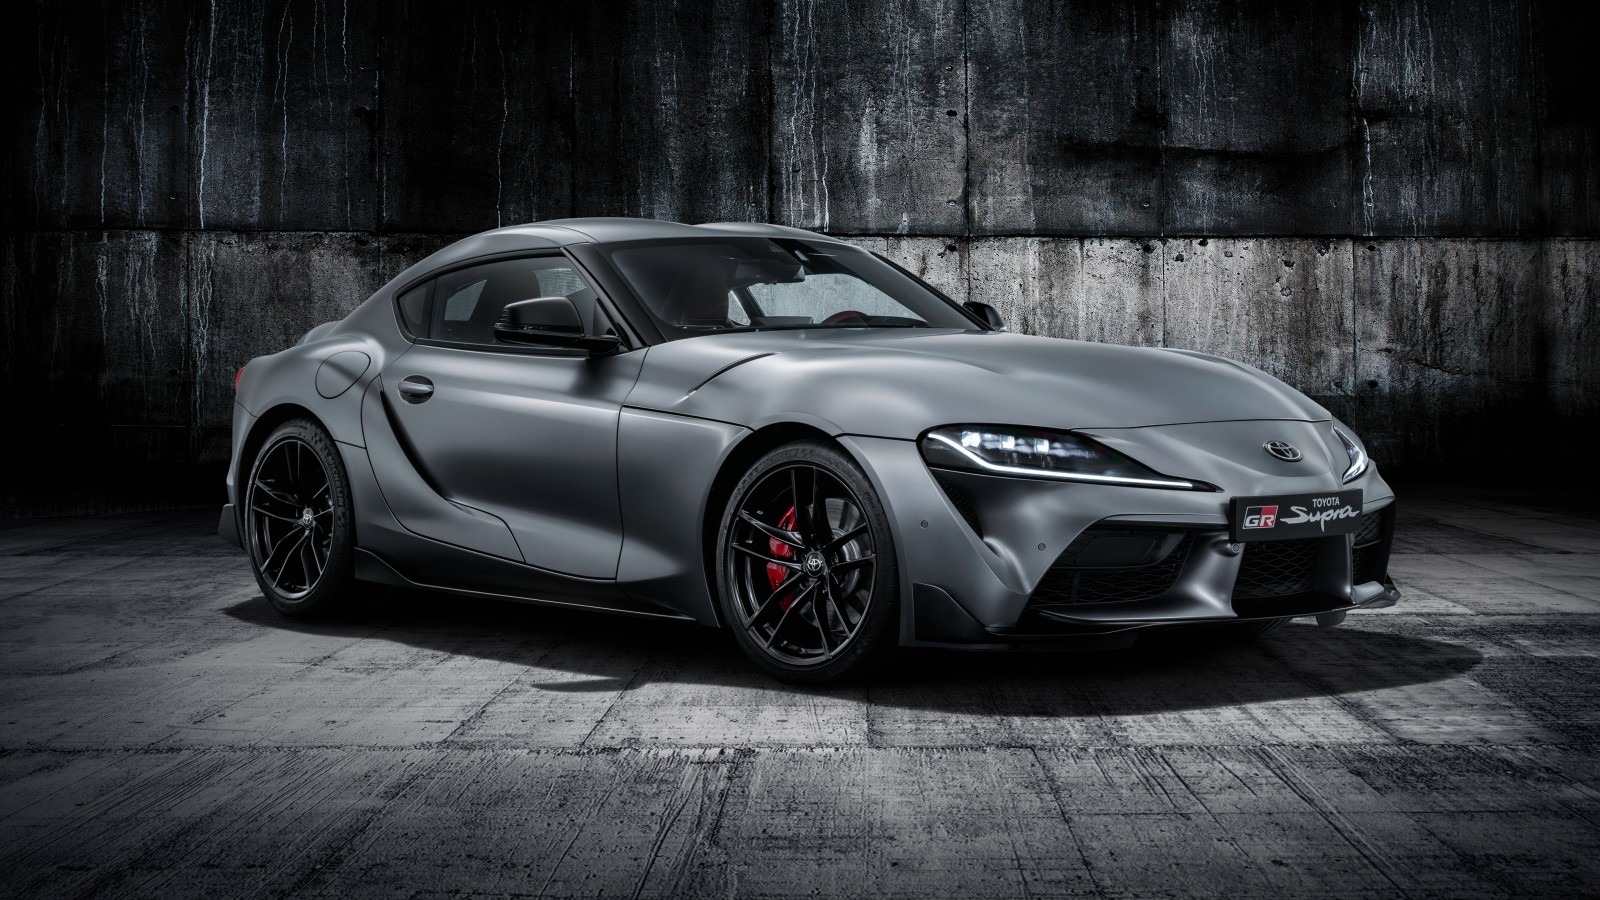 Toyota GR Supra A90 Edition 2019 4K Wallpaper | HD Car ...